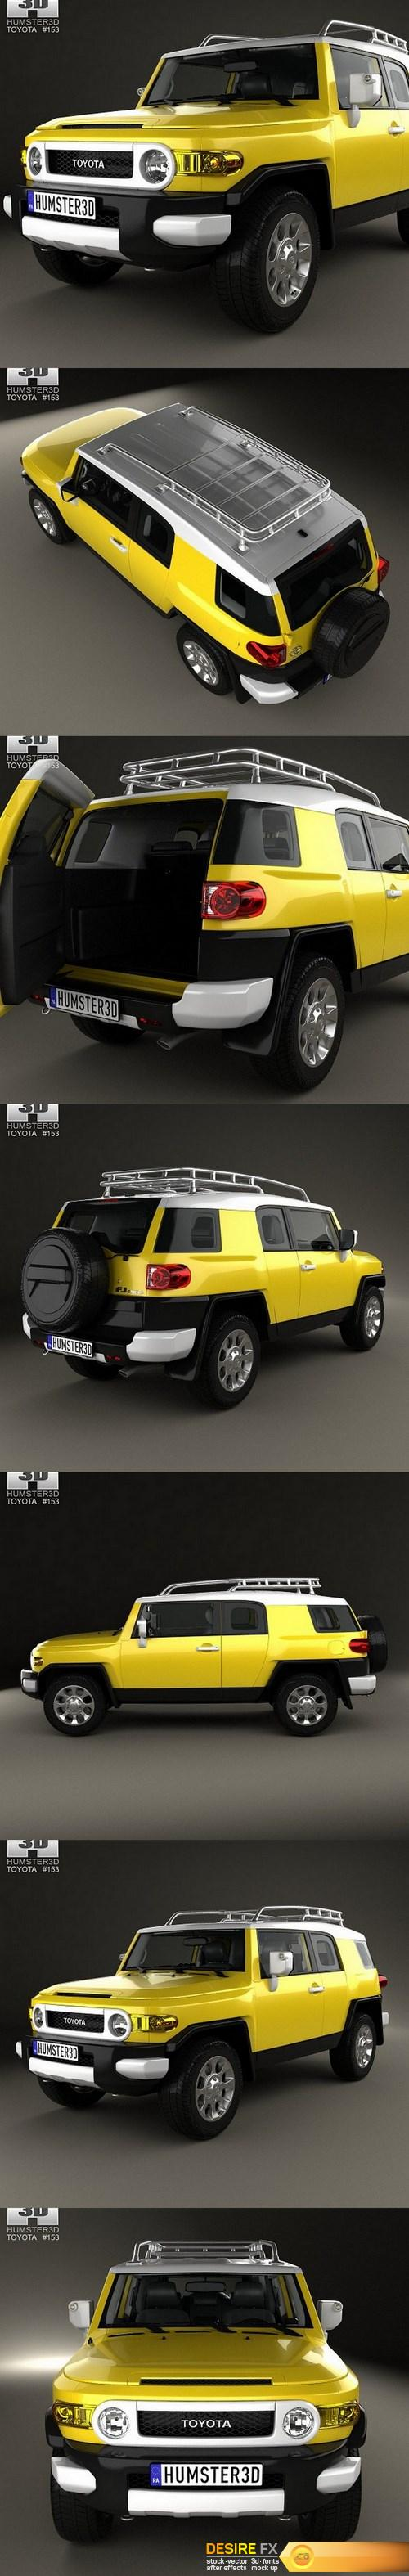 3d-models - Toyota FJ Cruiser HQ interior 2010 3D Model